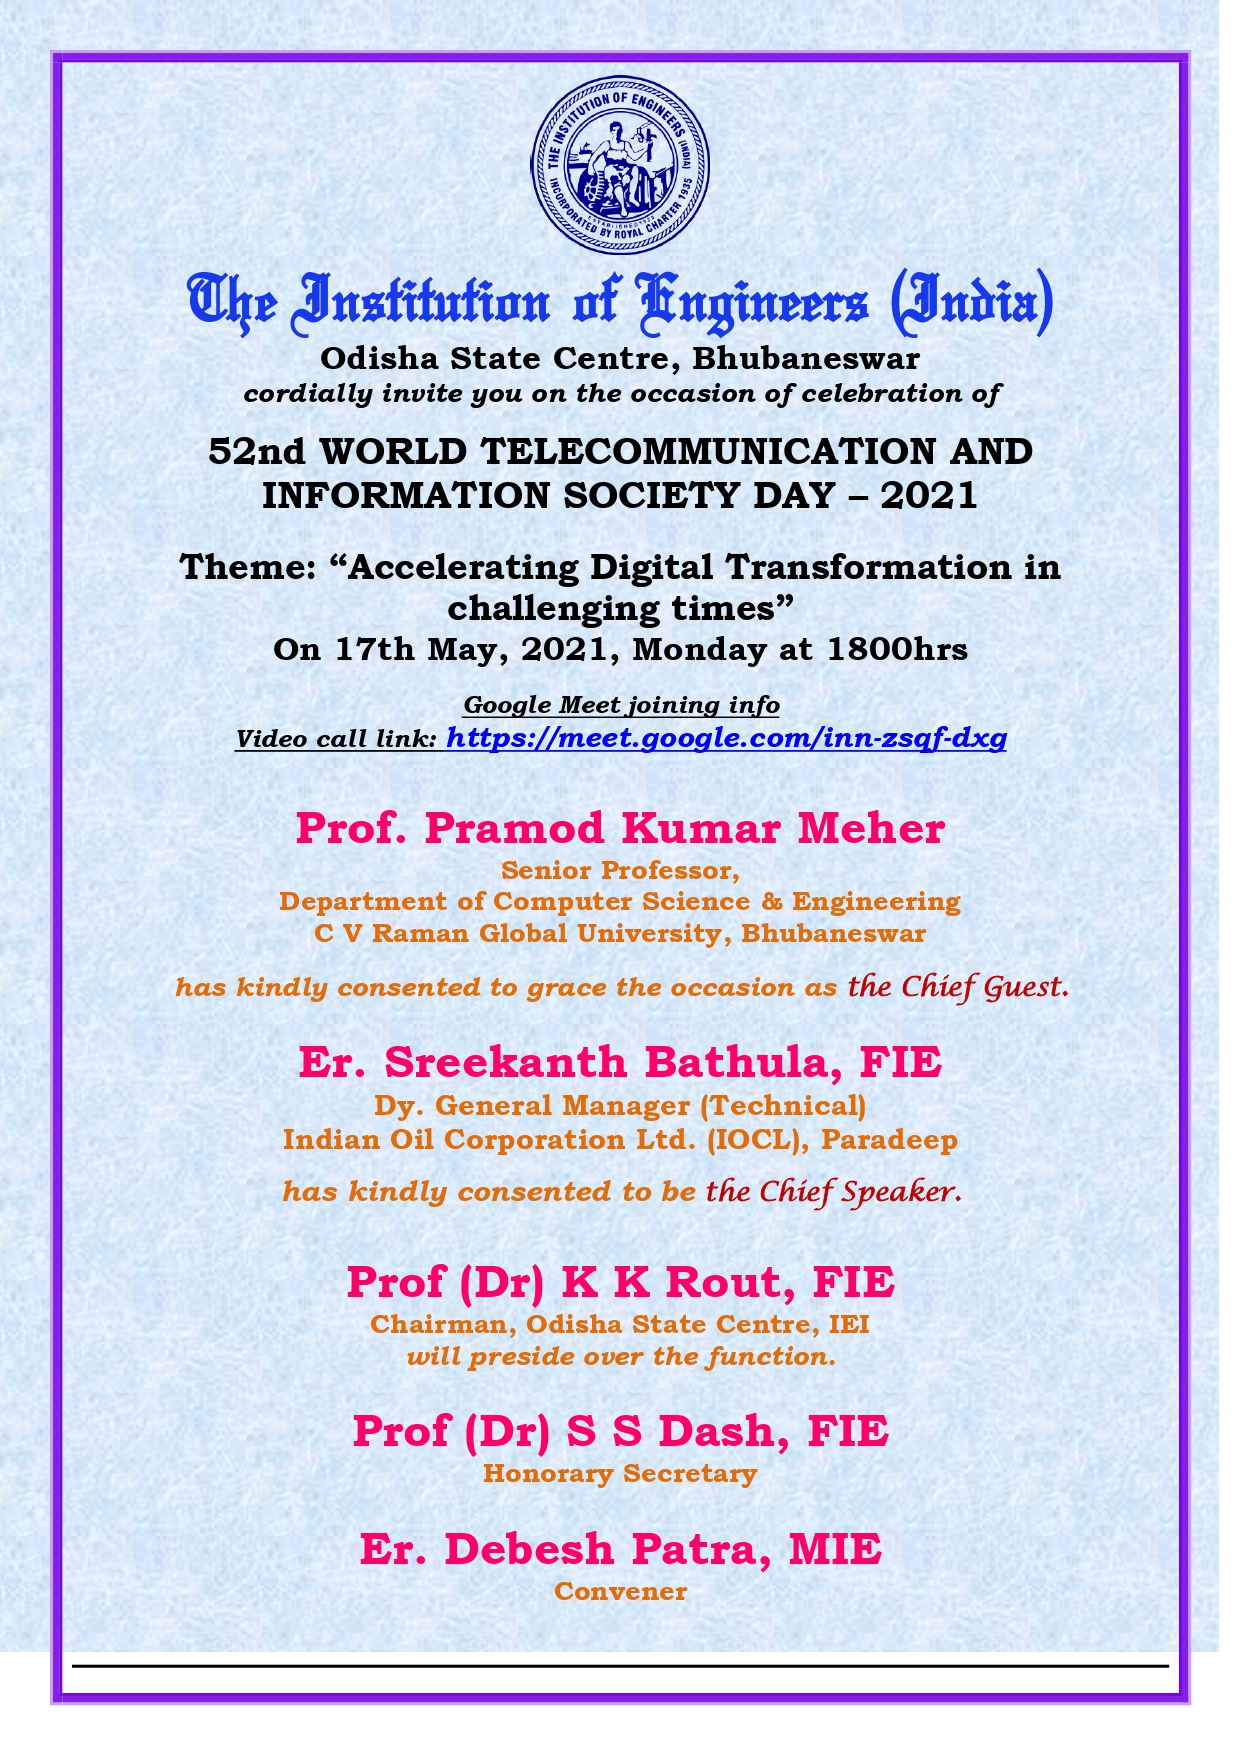 Invitation Card of 52nd WORLD TELECOMMUNICATION AND INFORMATION SOCIETY DAY - 2021_page-0001